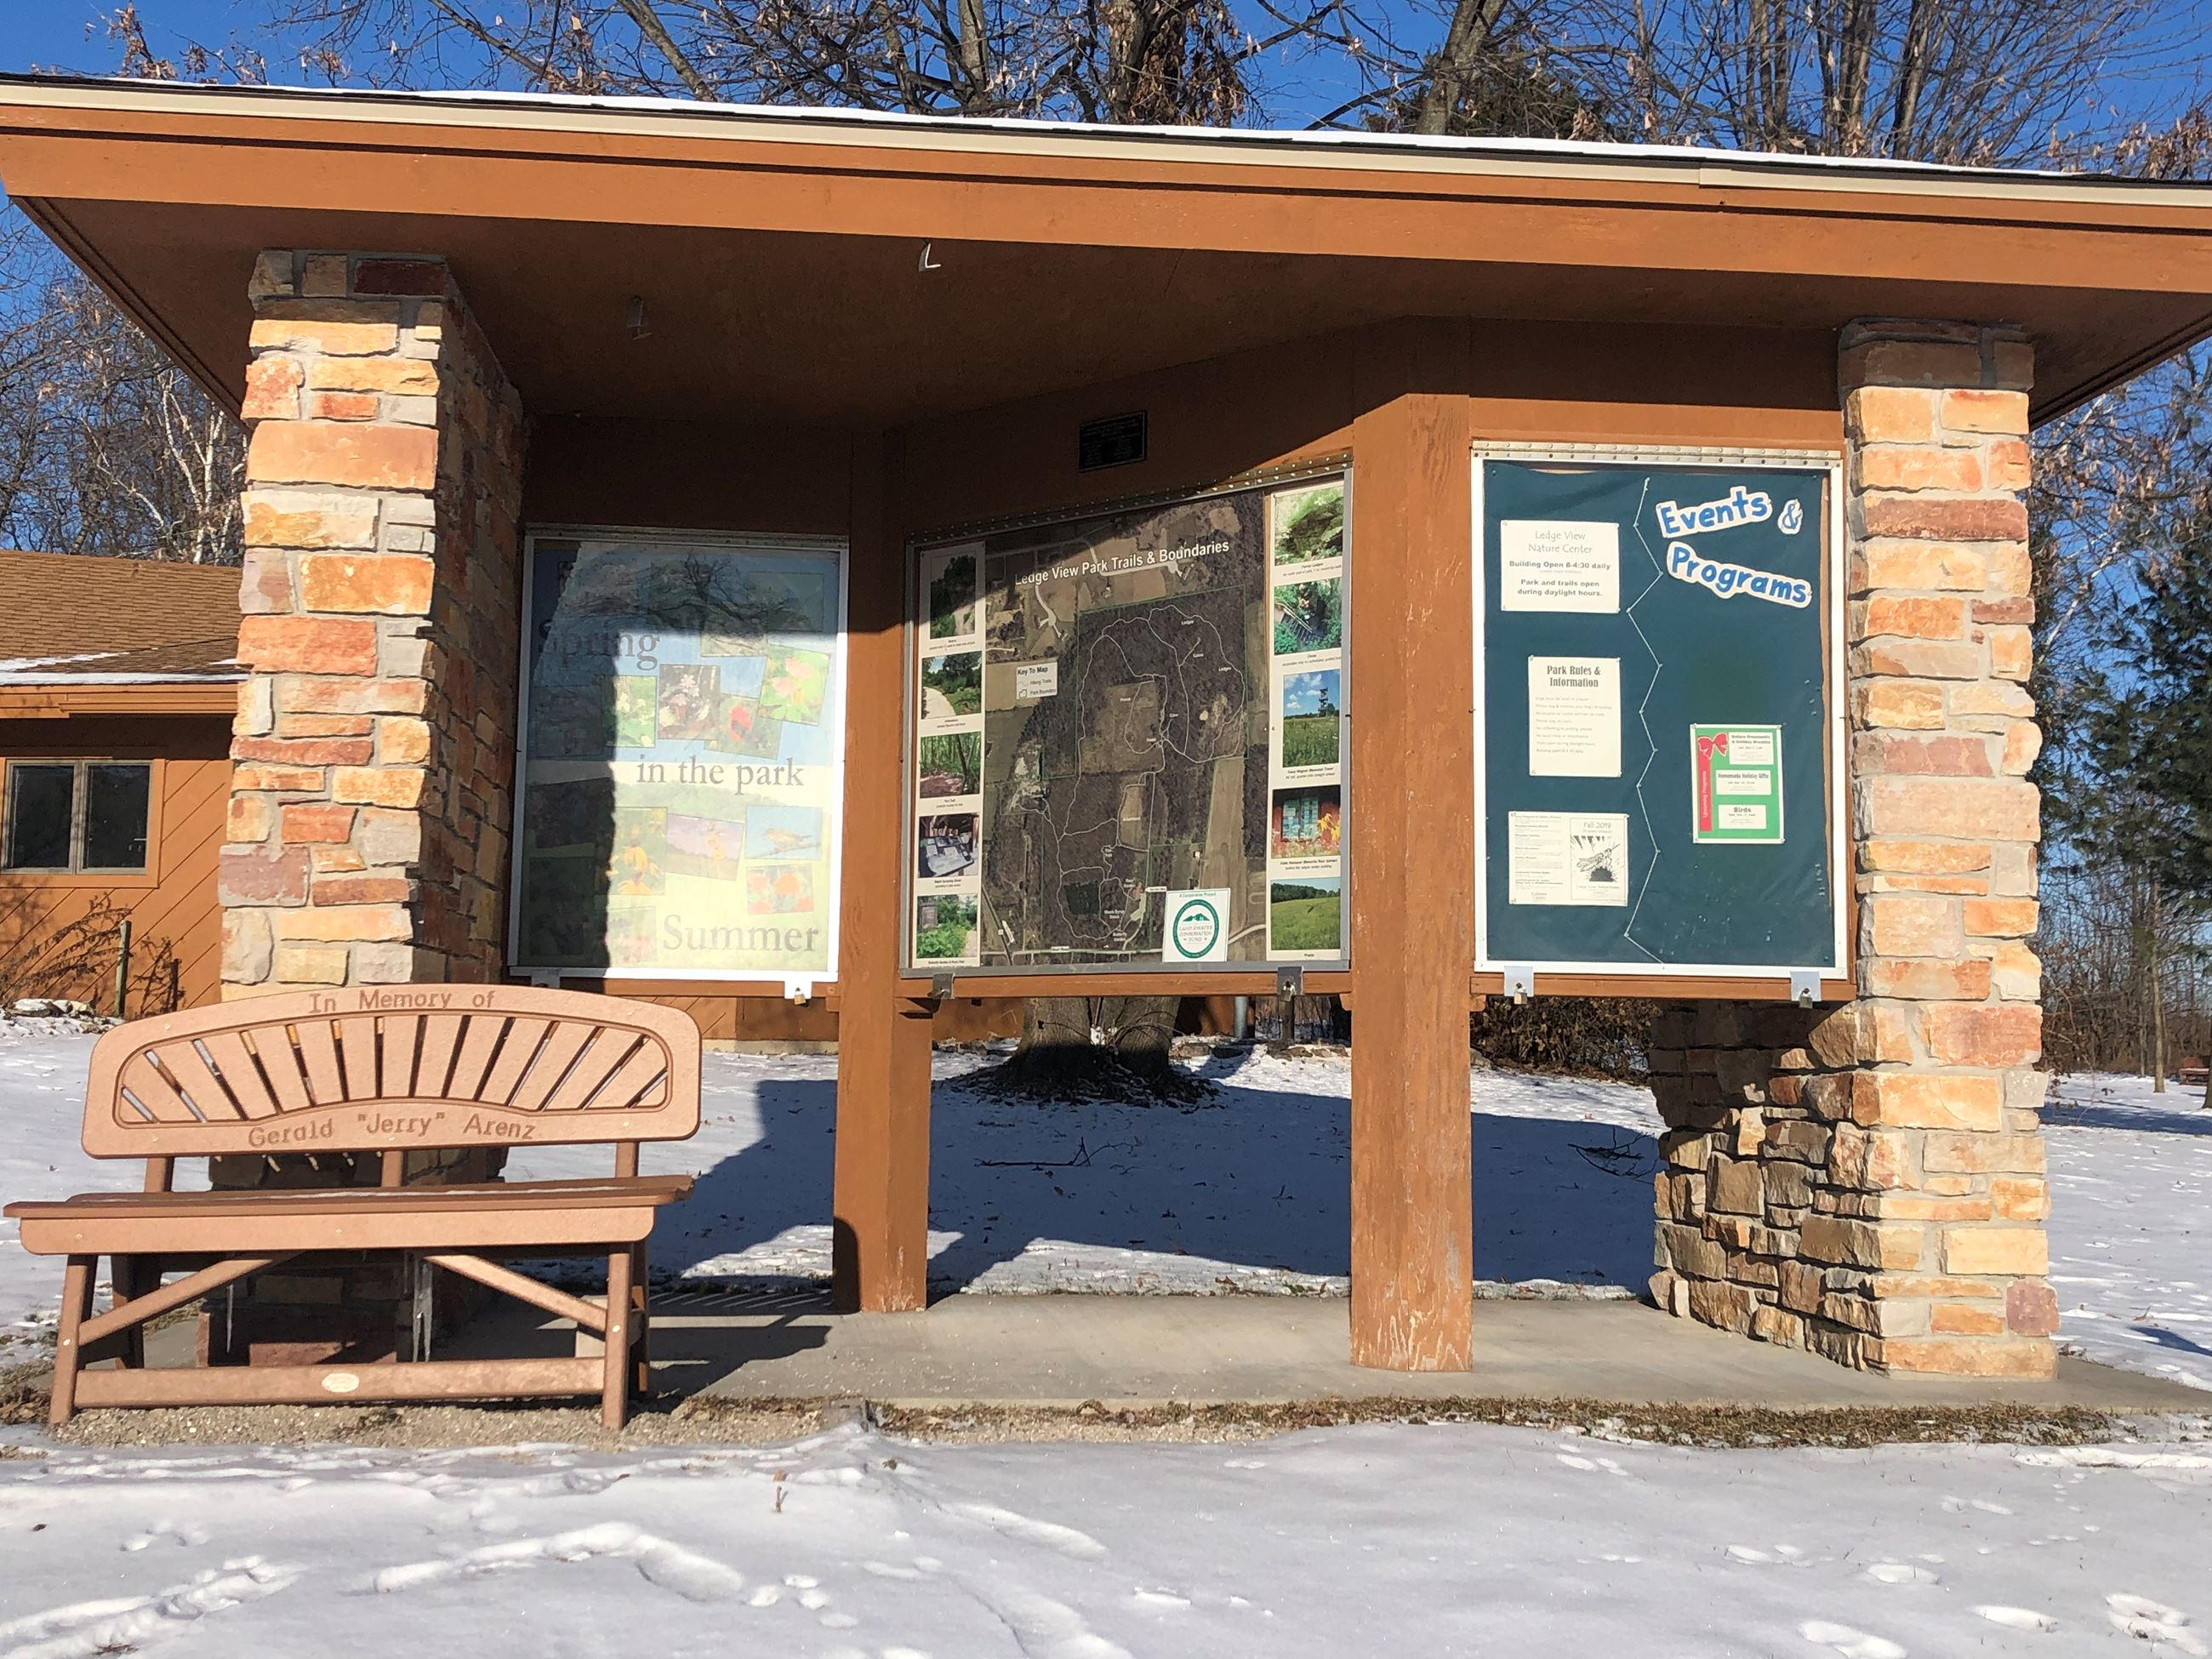 A stone and wood kiosk with information on it for park visitors.